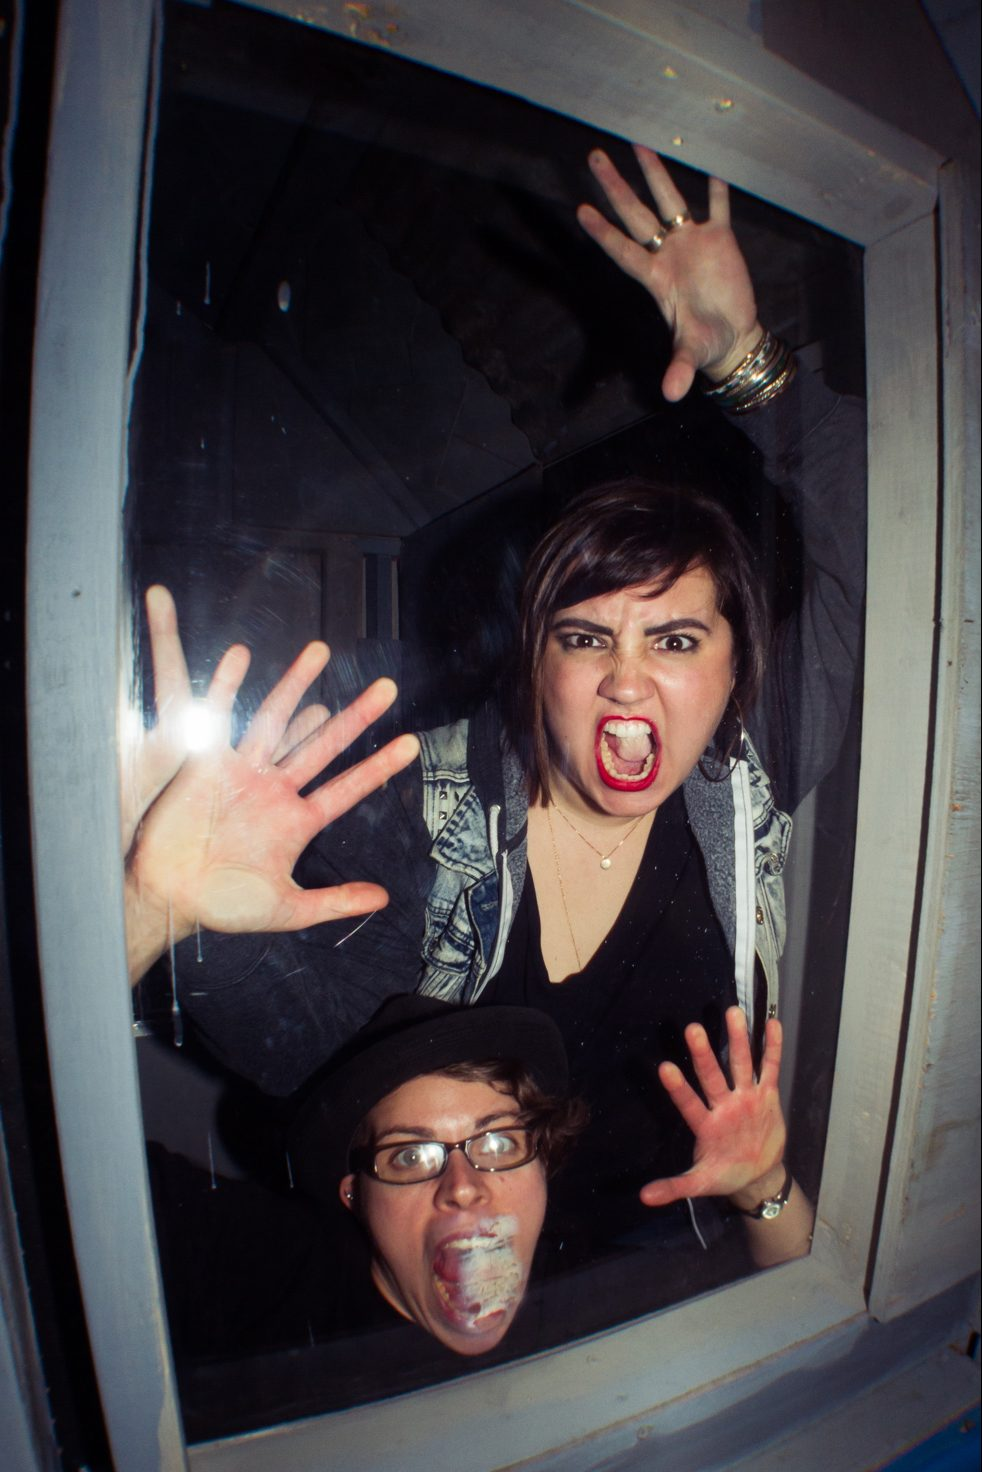 Two People With Yelling Faces Pressed Against A Window